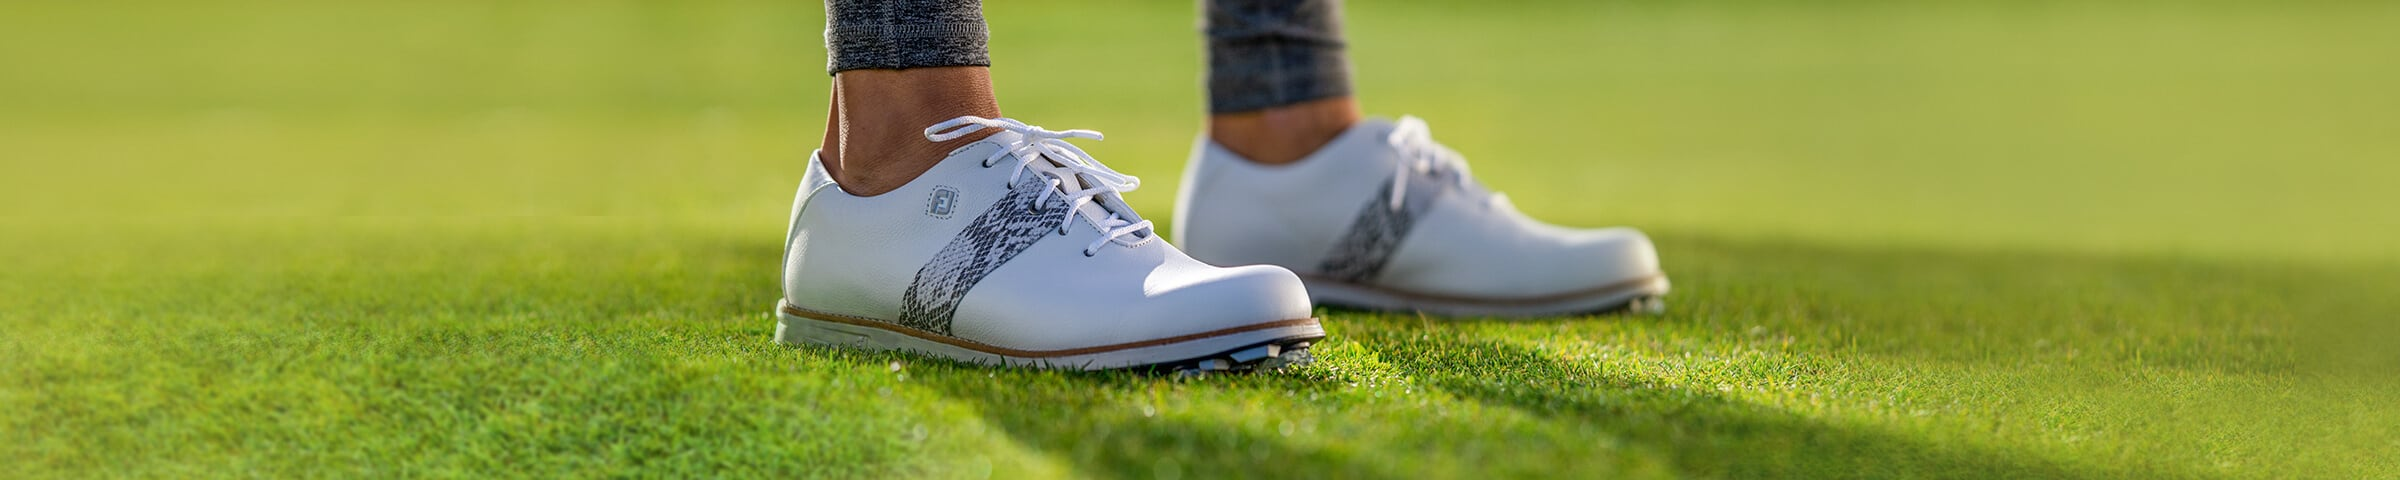 FootJoy Women's Spiked Shoes